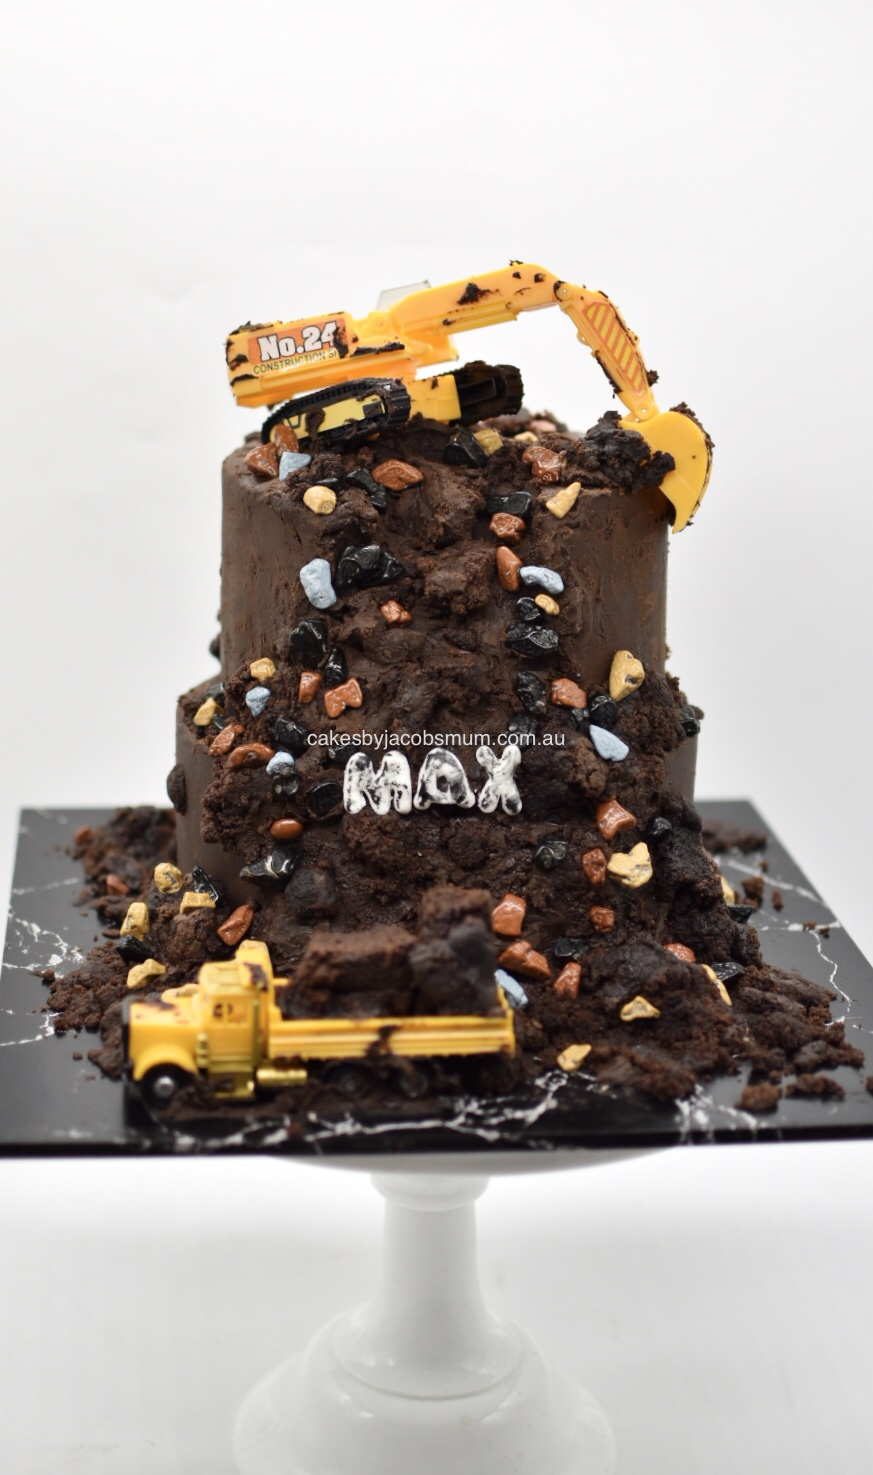 Digger construction birthday cake